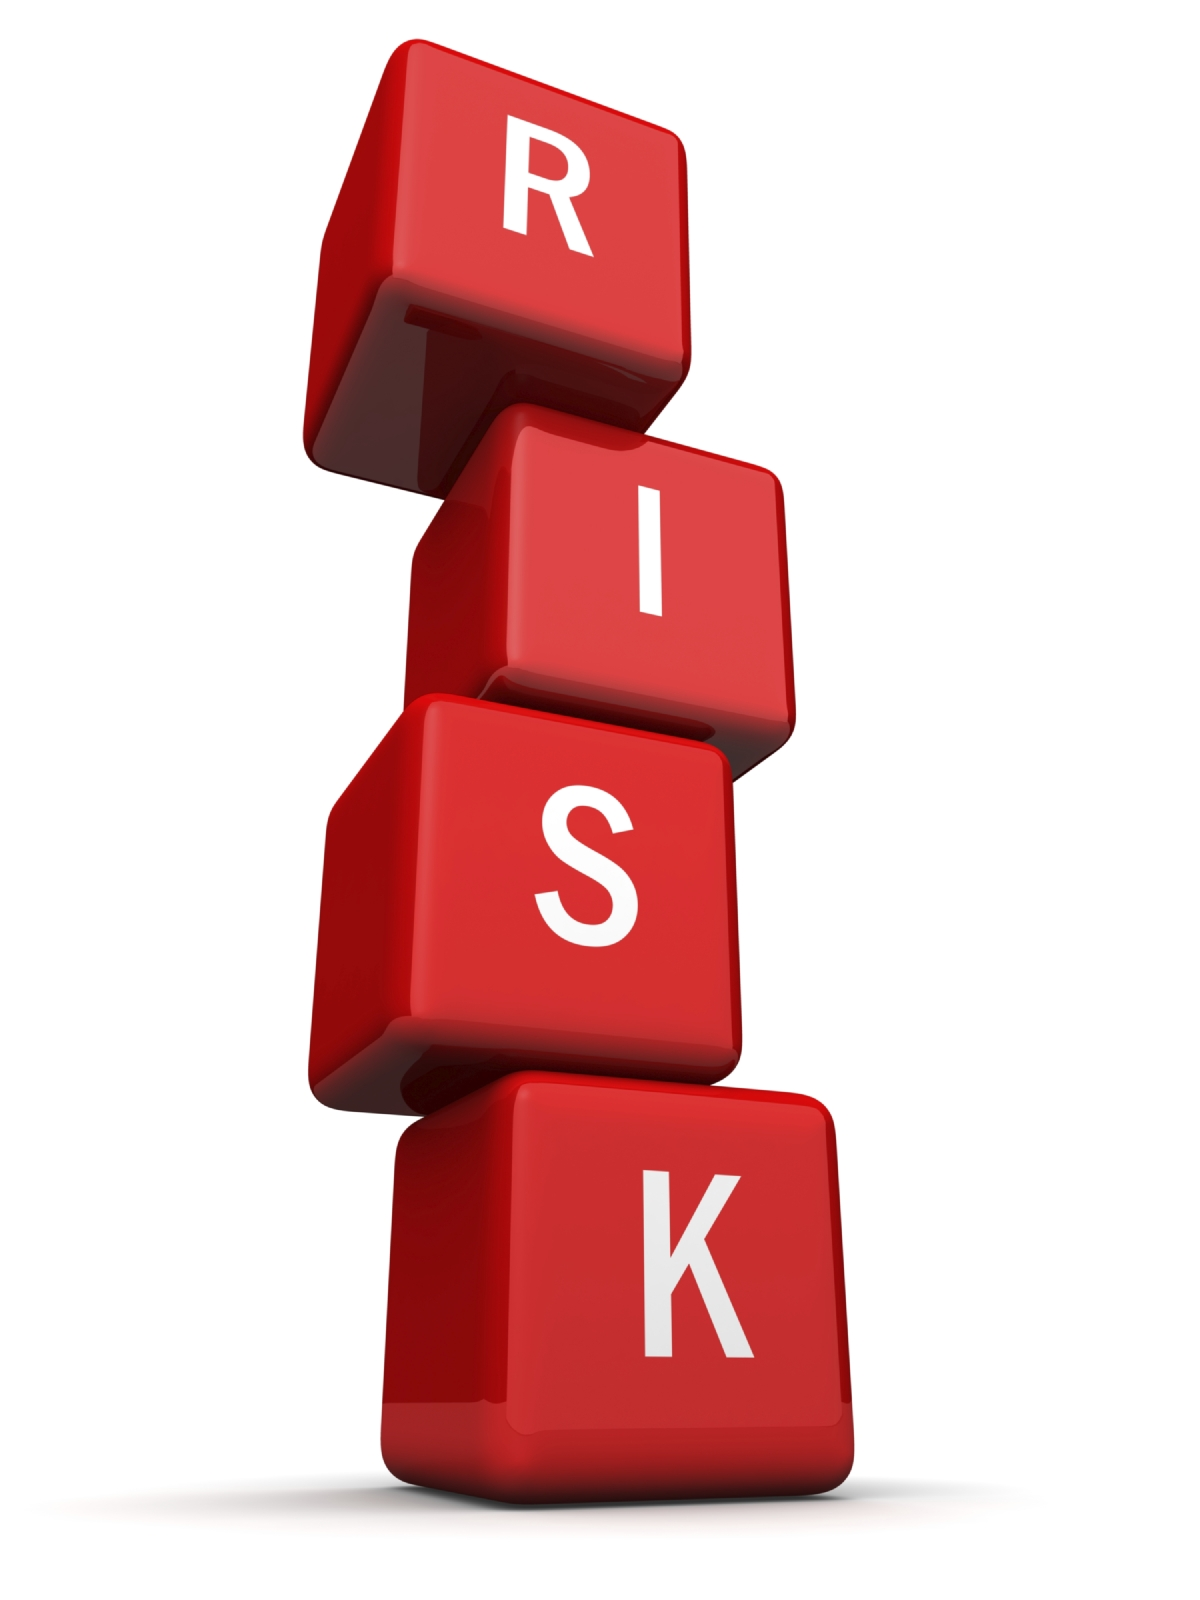 Peer Review, OPPE, FPPE, Privileging, Risk Management